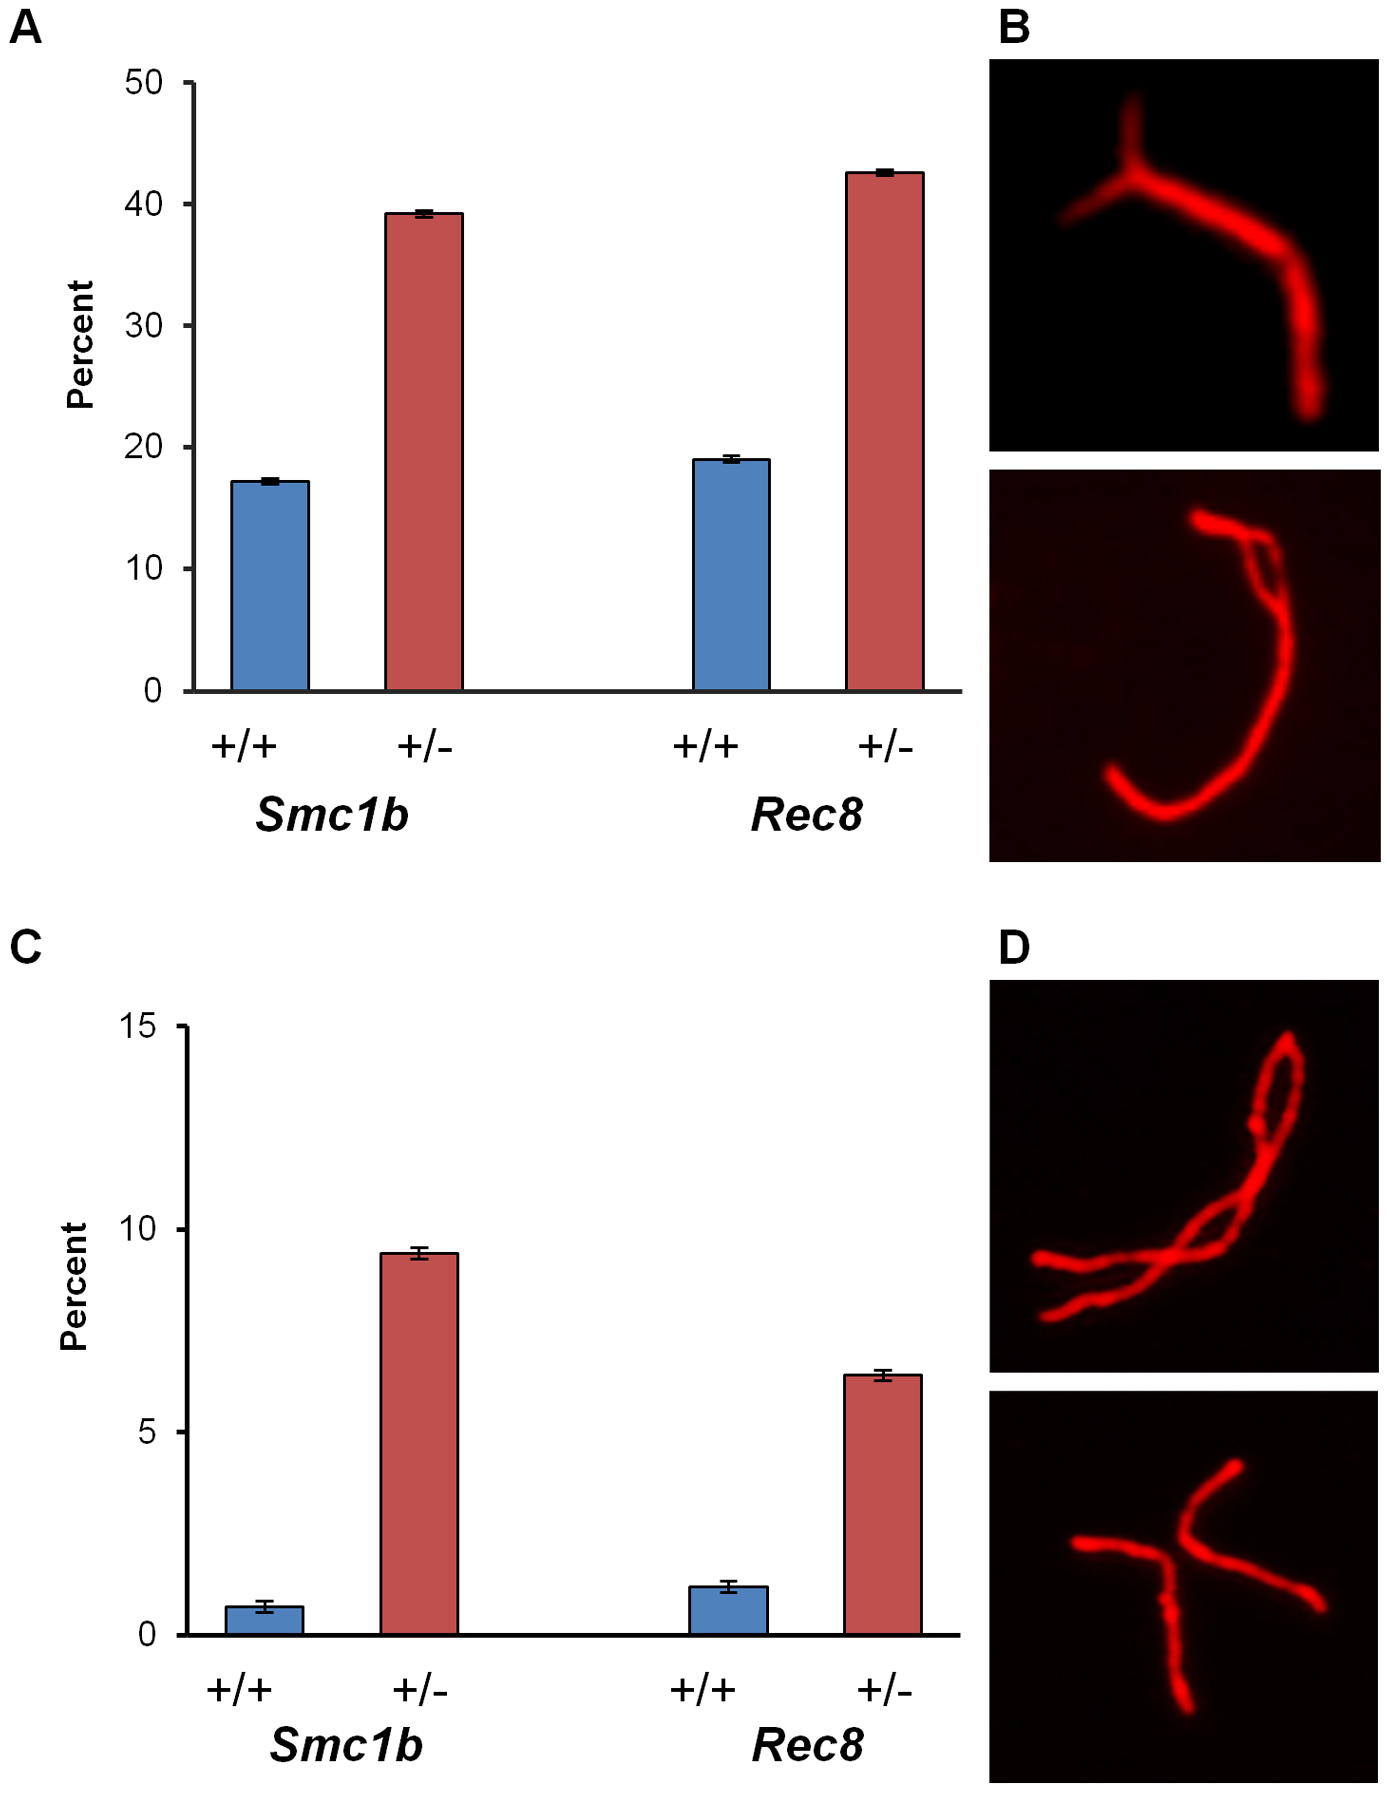 Synaptic errors are increased in cohesin heterozygotes.